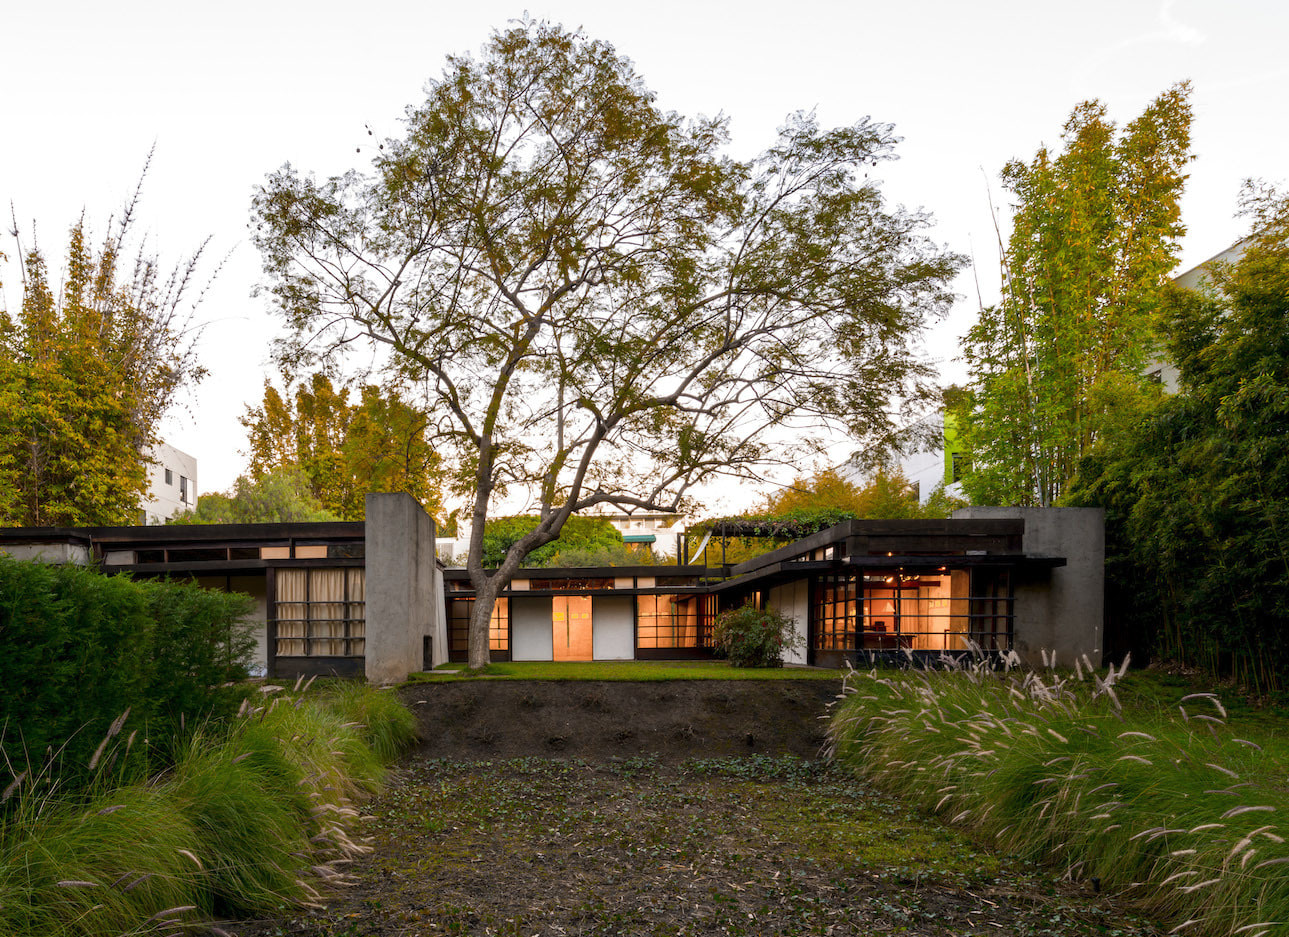 Schindler house   Source: archdaily.com